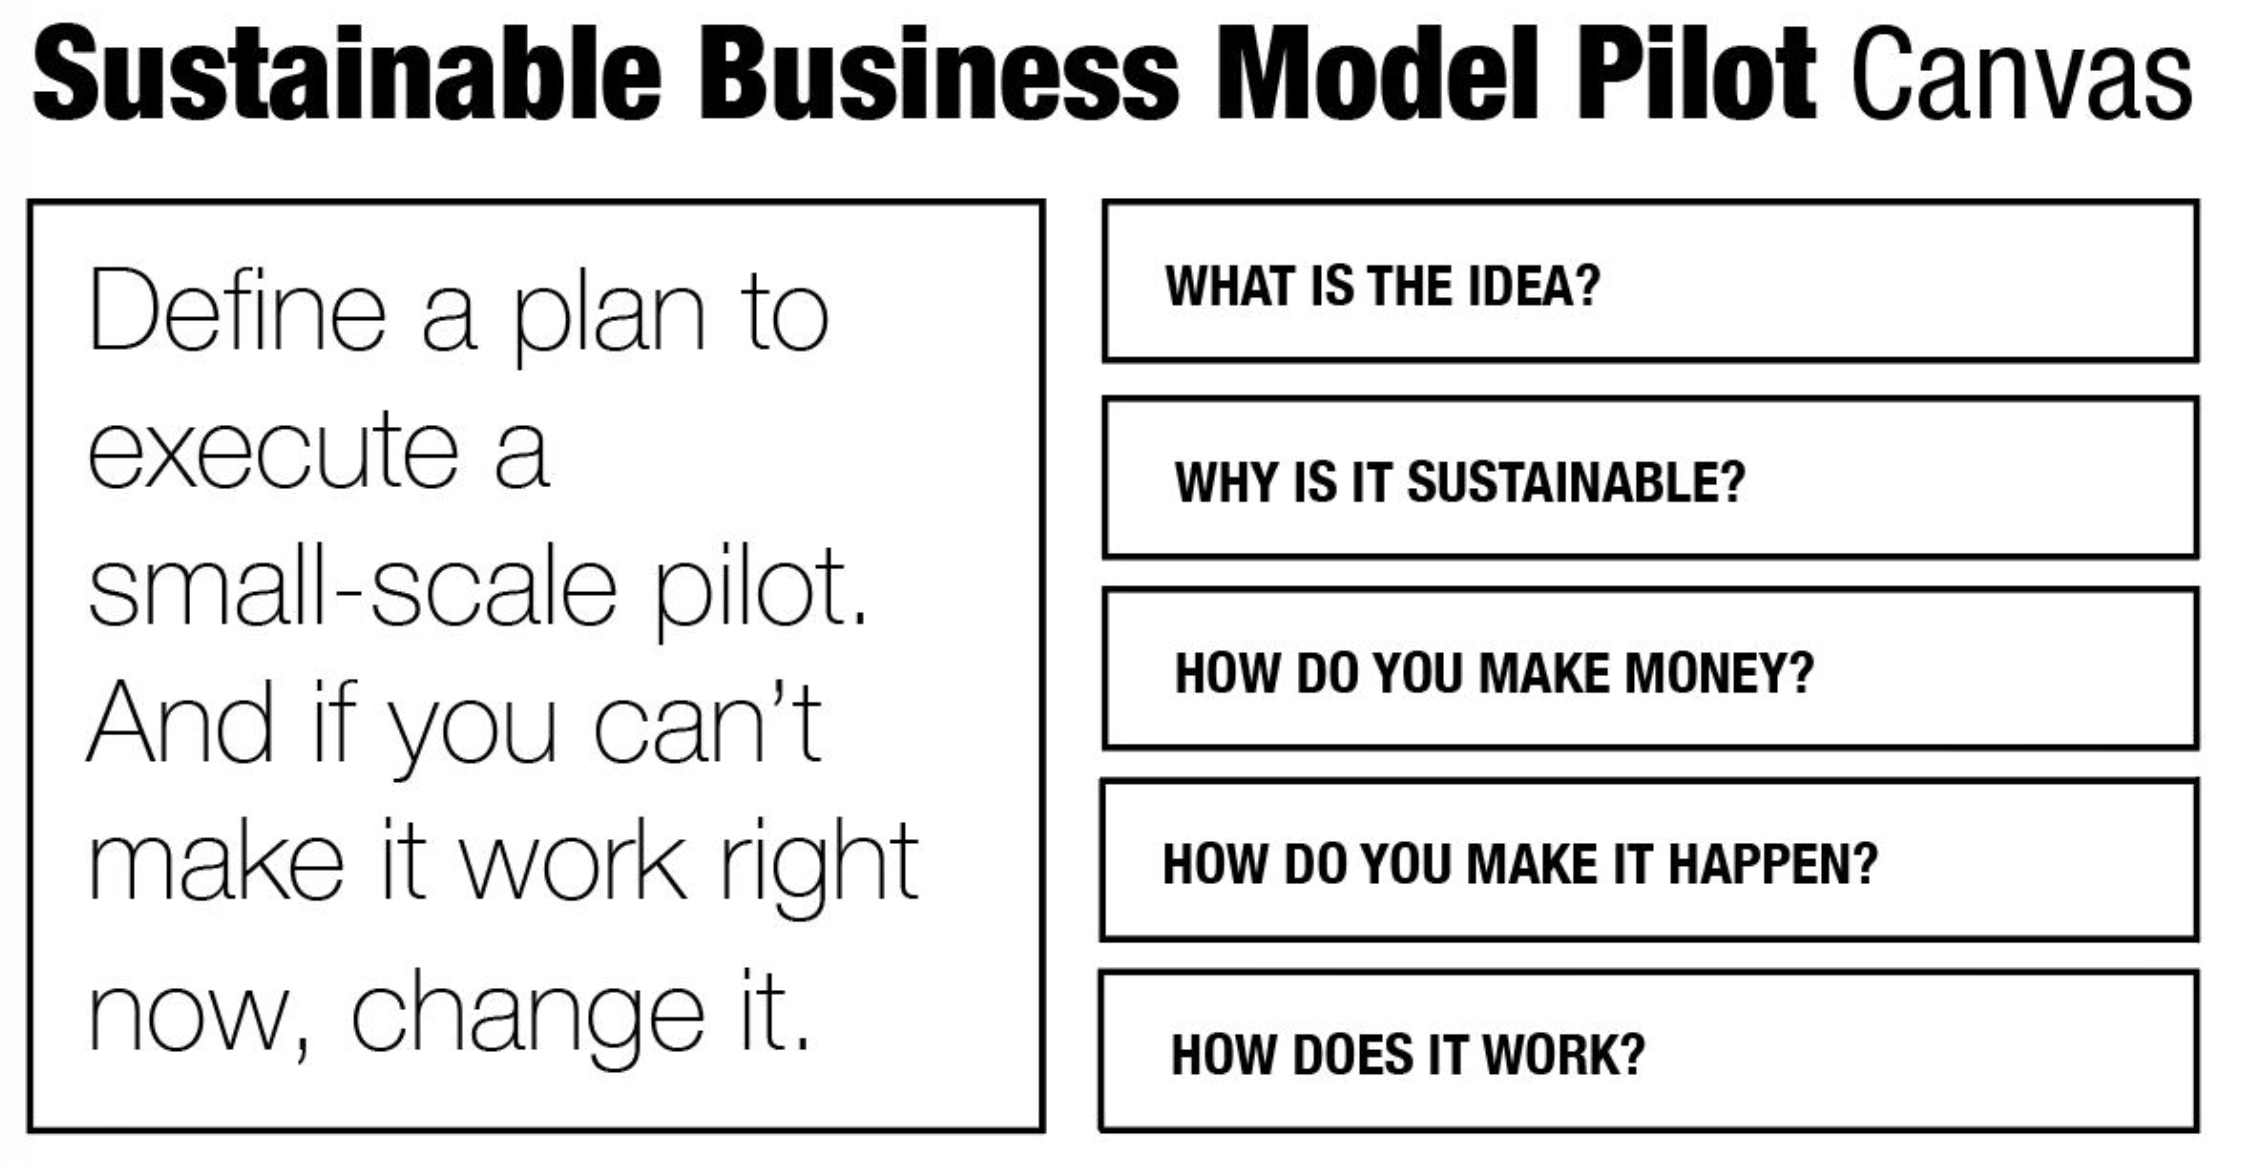 Papers in Brief (XXVIII): Baldassarre et al. (2020): Addressing the design-implementation gap of sustainable business models by prototyping